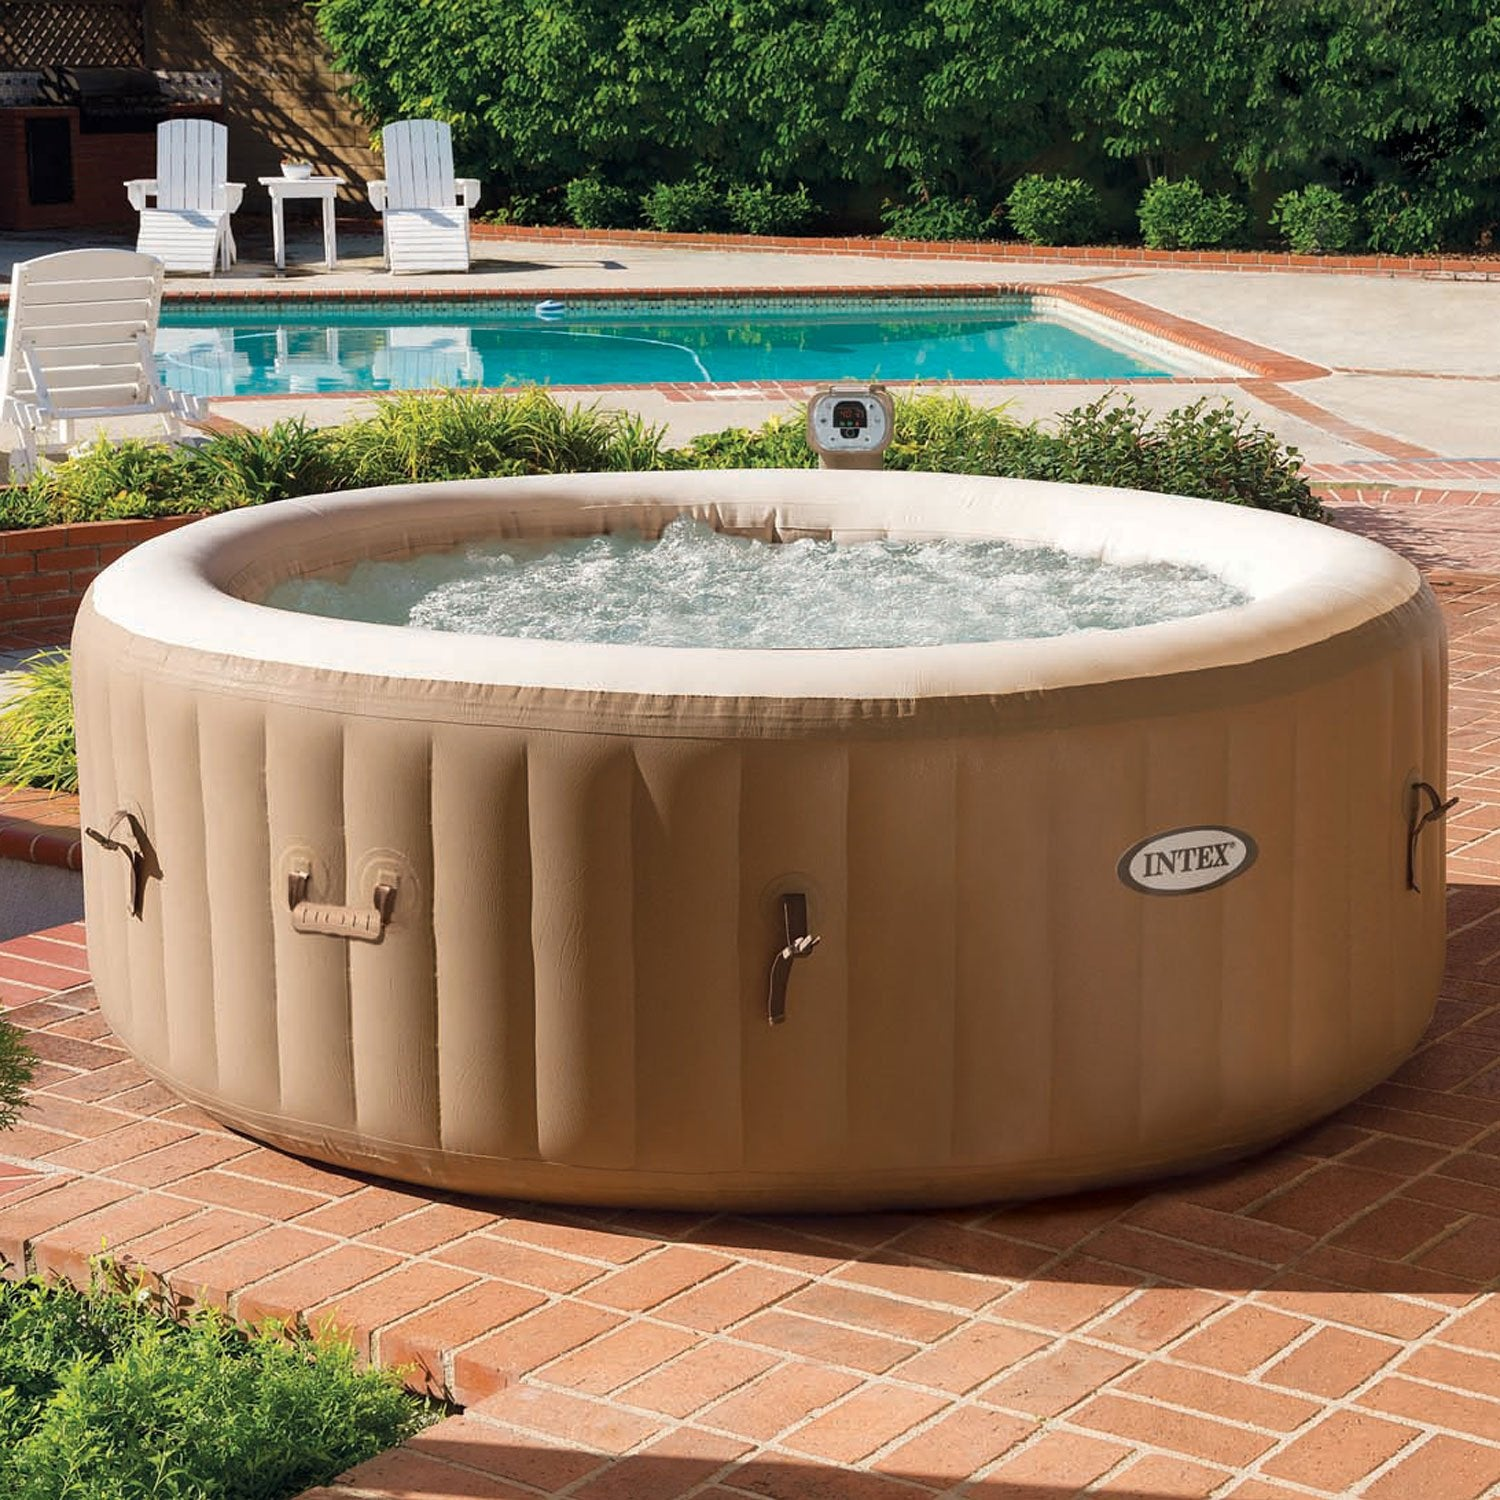 Spa gonflable intex rond 4 places assises leroy merlin - Produit pour jacuzzi gonflable ...